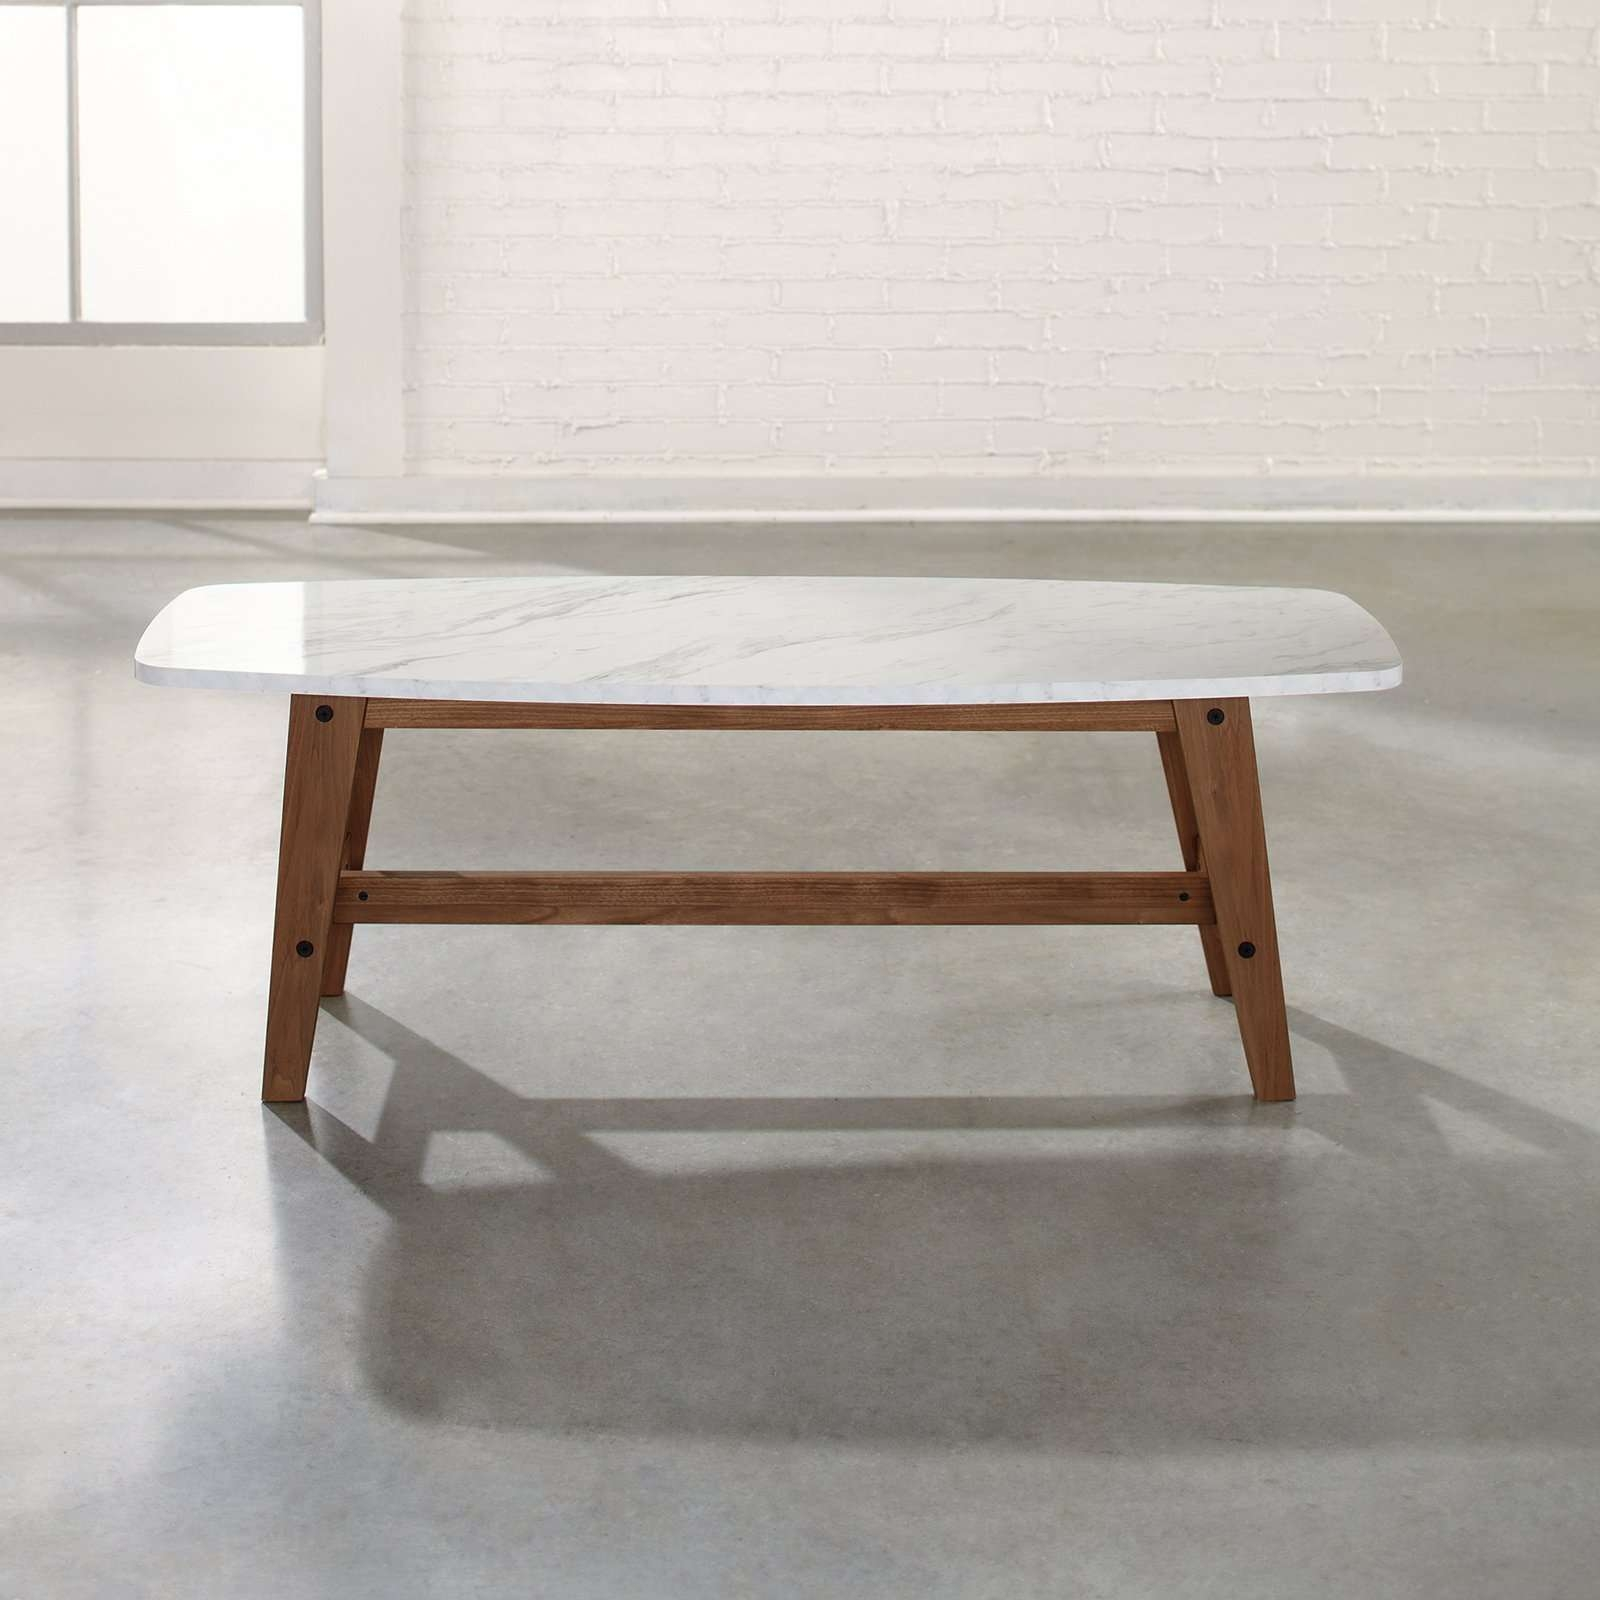 2018 Modern Coffee Tables Intended For Sauder Soft Modern Coffee Table – Walmart (View 7 of 20)